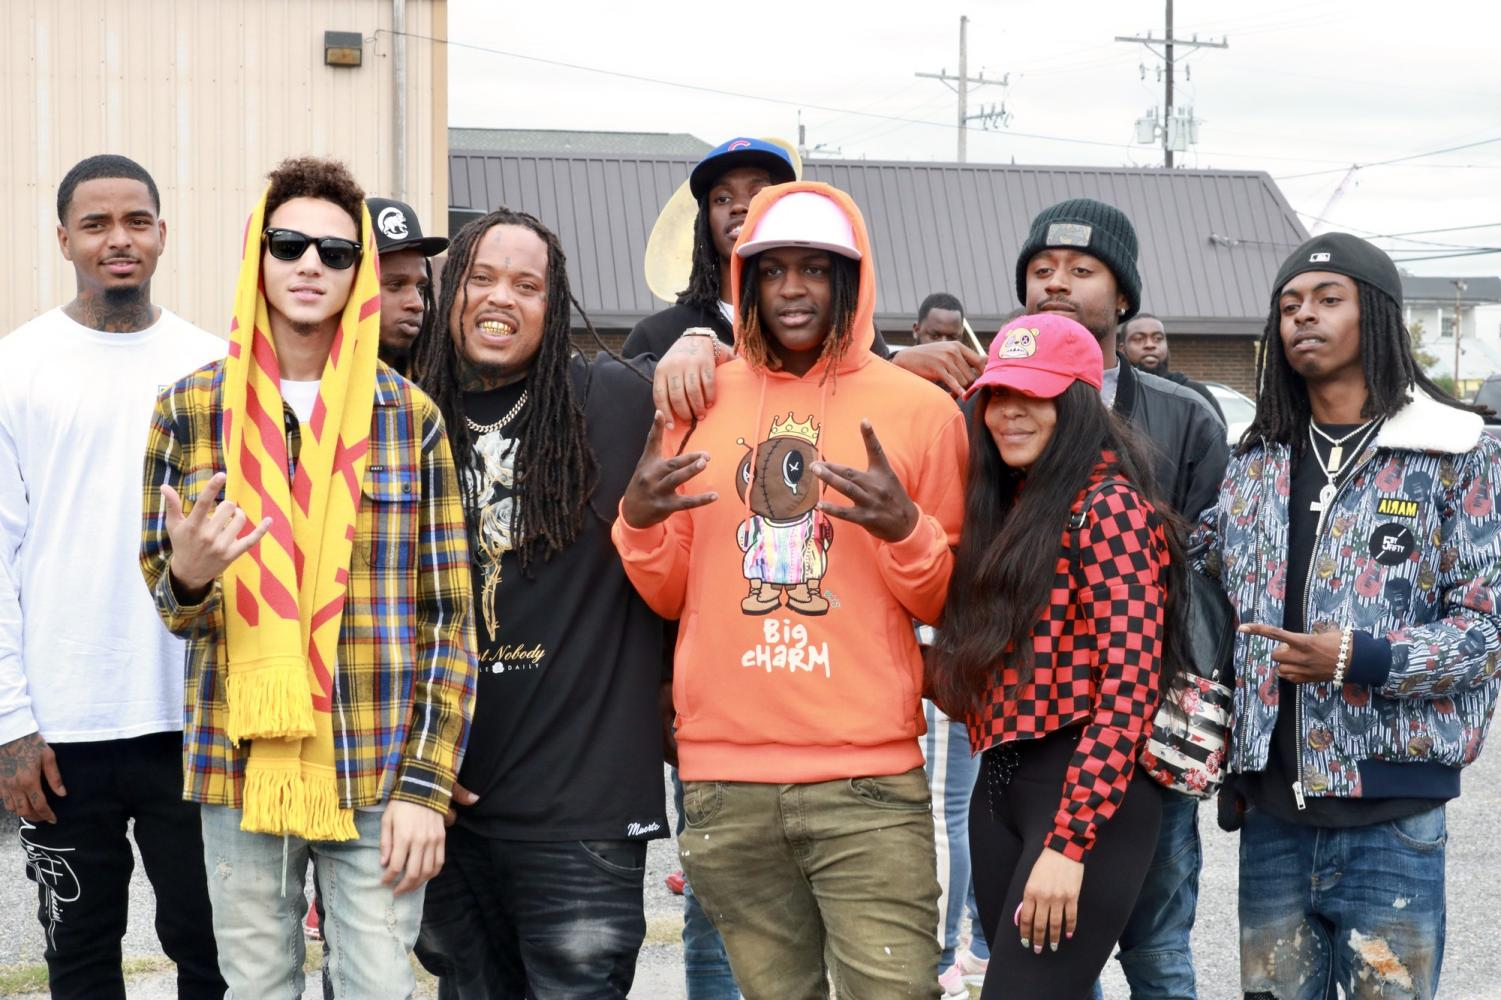 Cash Money Records artists pose for a photo at the 23rd annual Turkey Giveaway on Nov. 26, 2019. Photo credit: Andres Fuentes